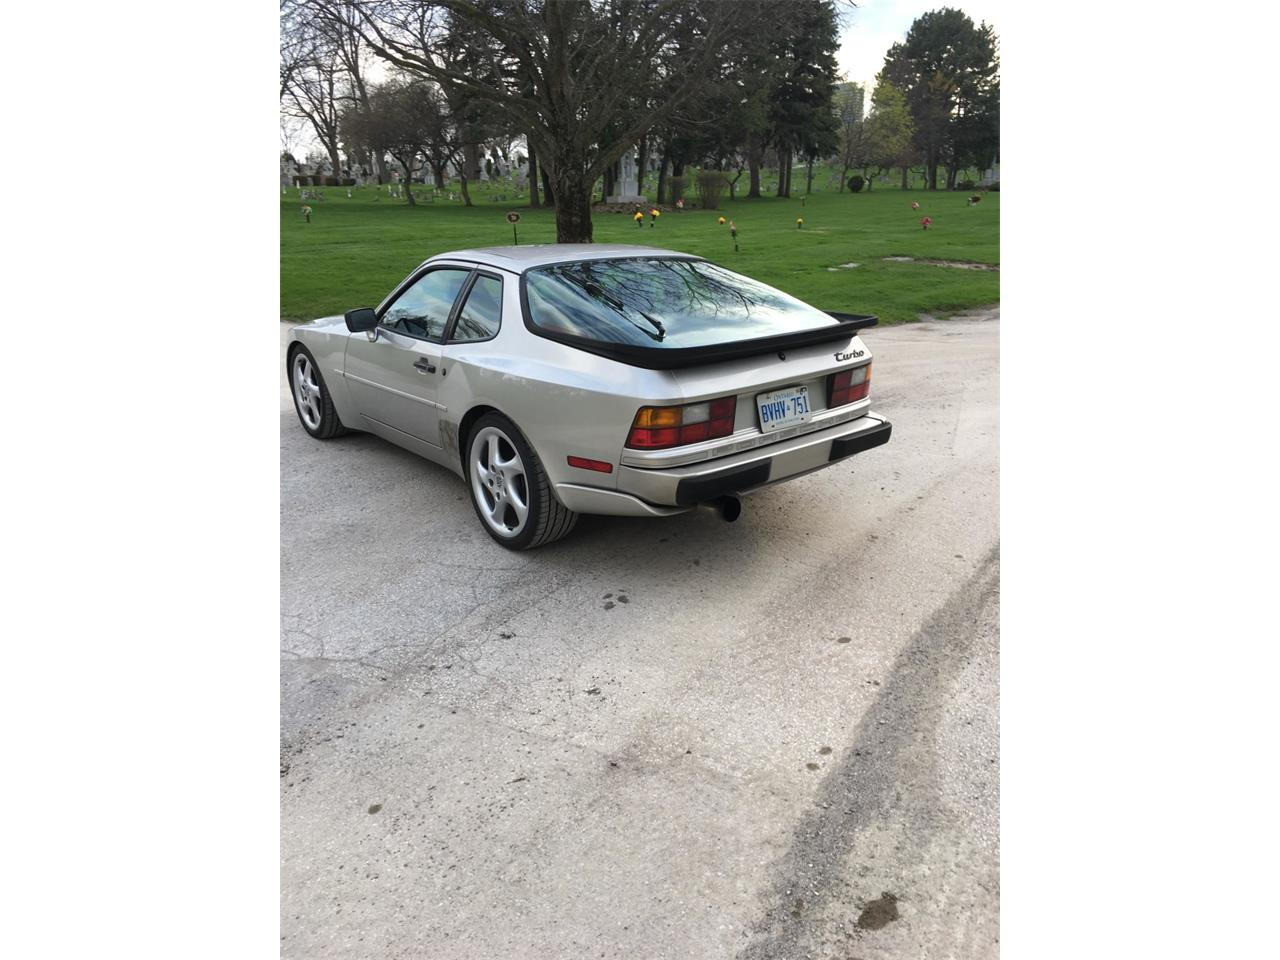 Large Picture of '87 Porsche 944 Auction Vehicle Offered by Bring A Trailer - Q56D